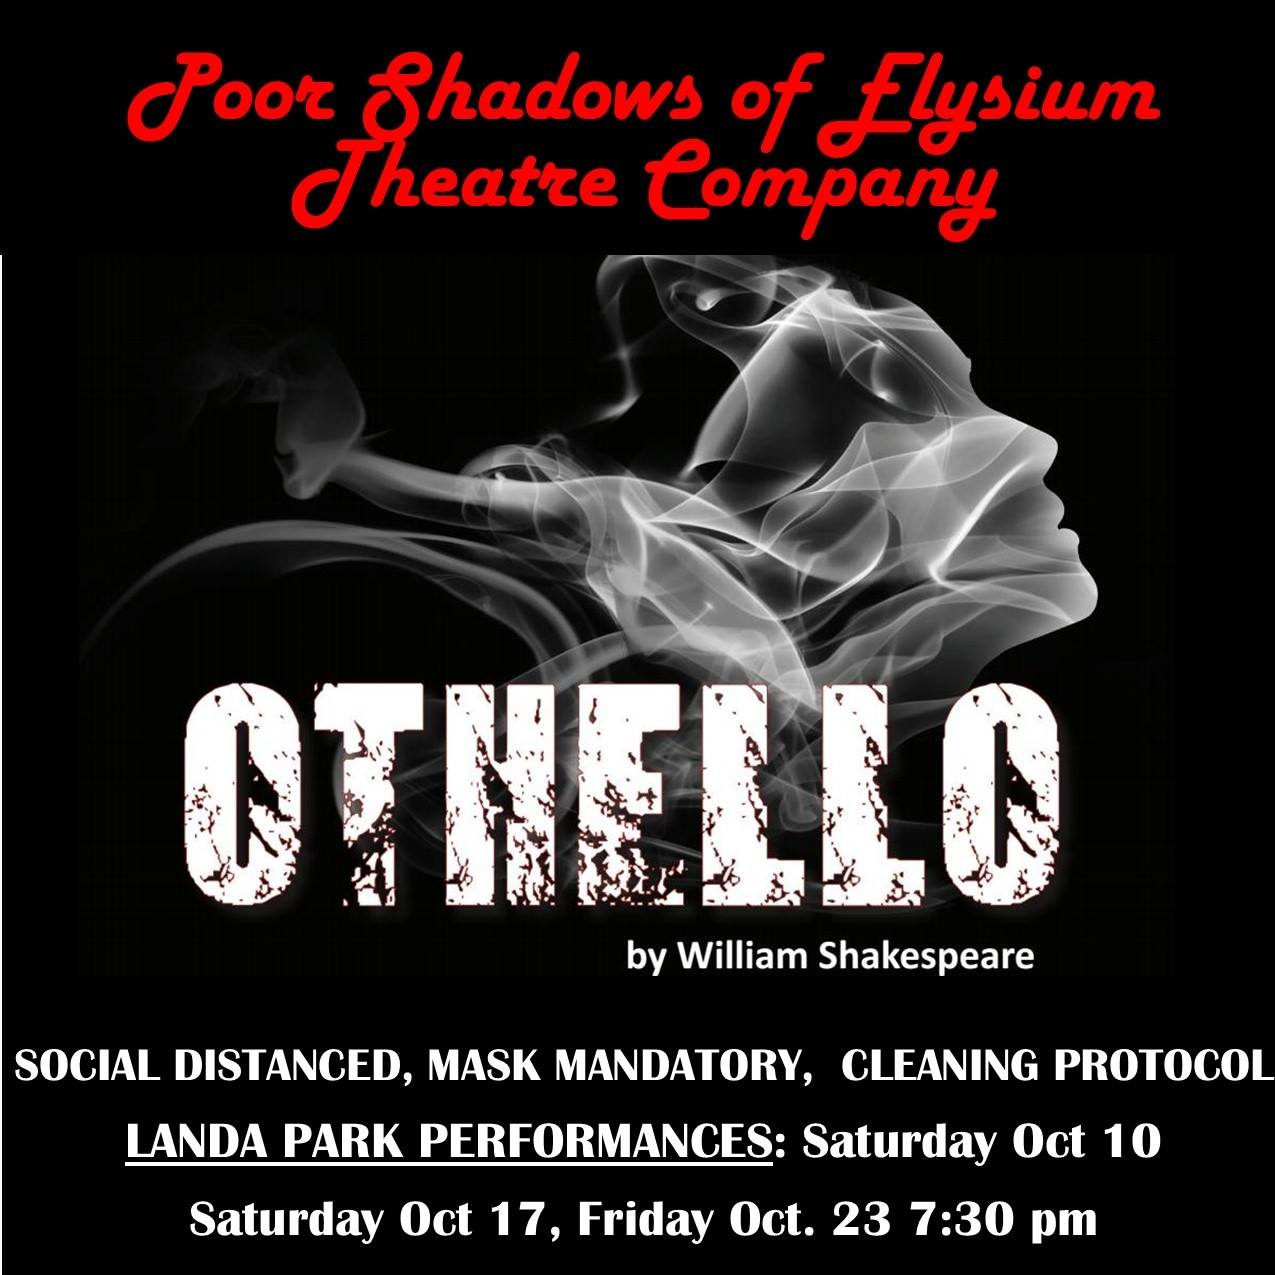 Othello by Poor Shadows of Elysium